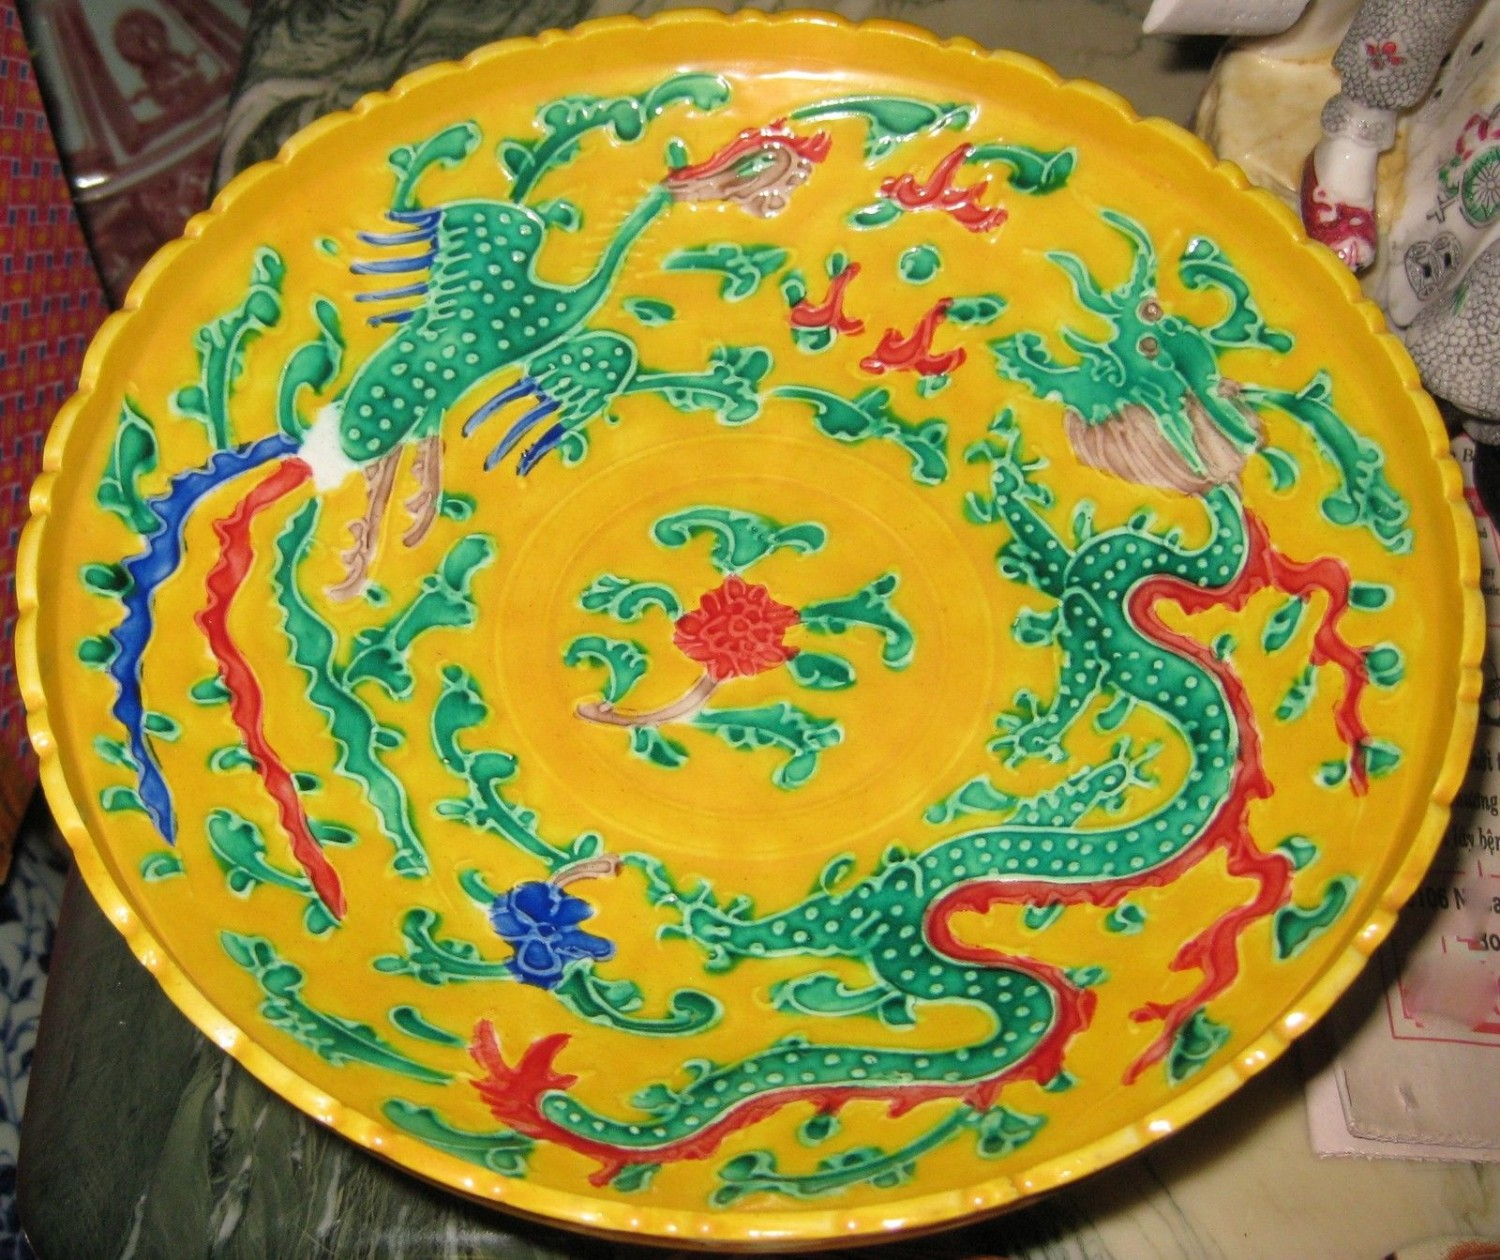 ANTIQUE CHINESE PORCELAIN DRAGON & PHOENIX PEDESTAL DISH, MING MARK,18TH CENTURY.